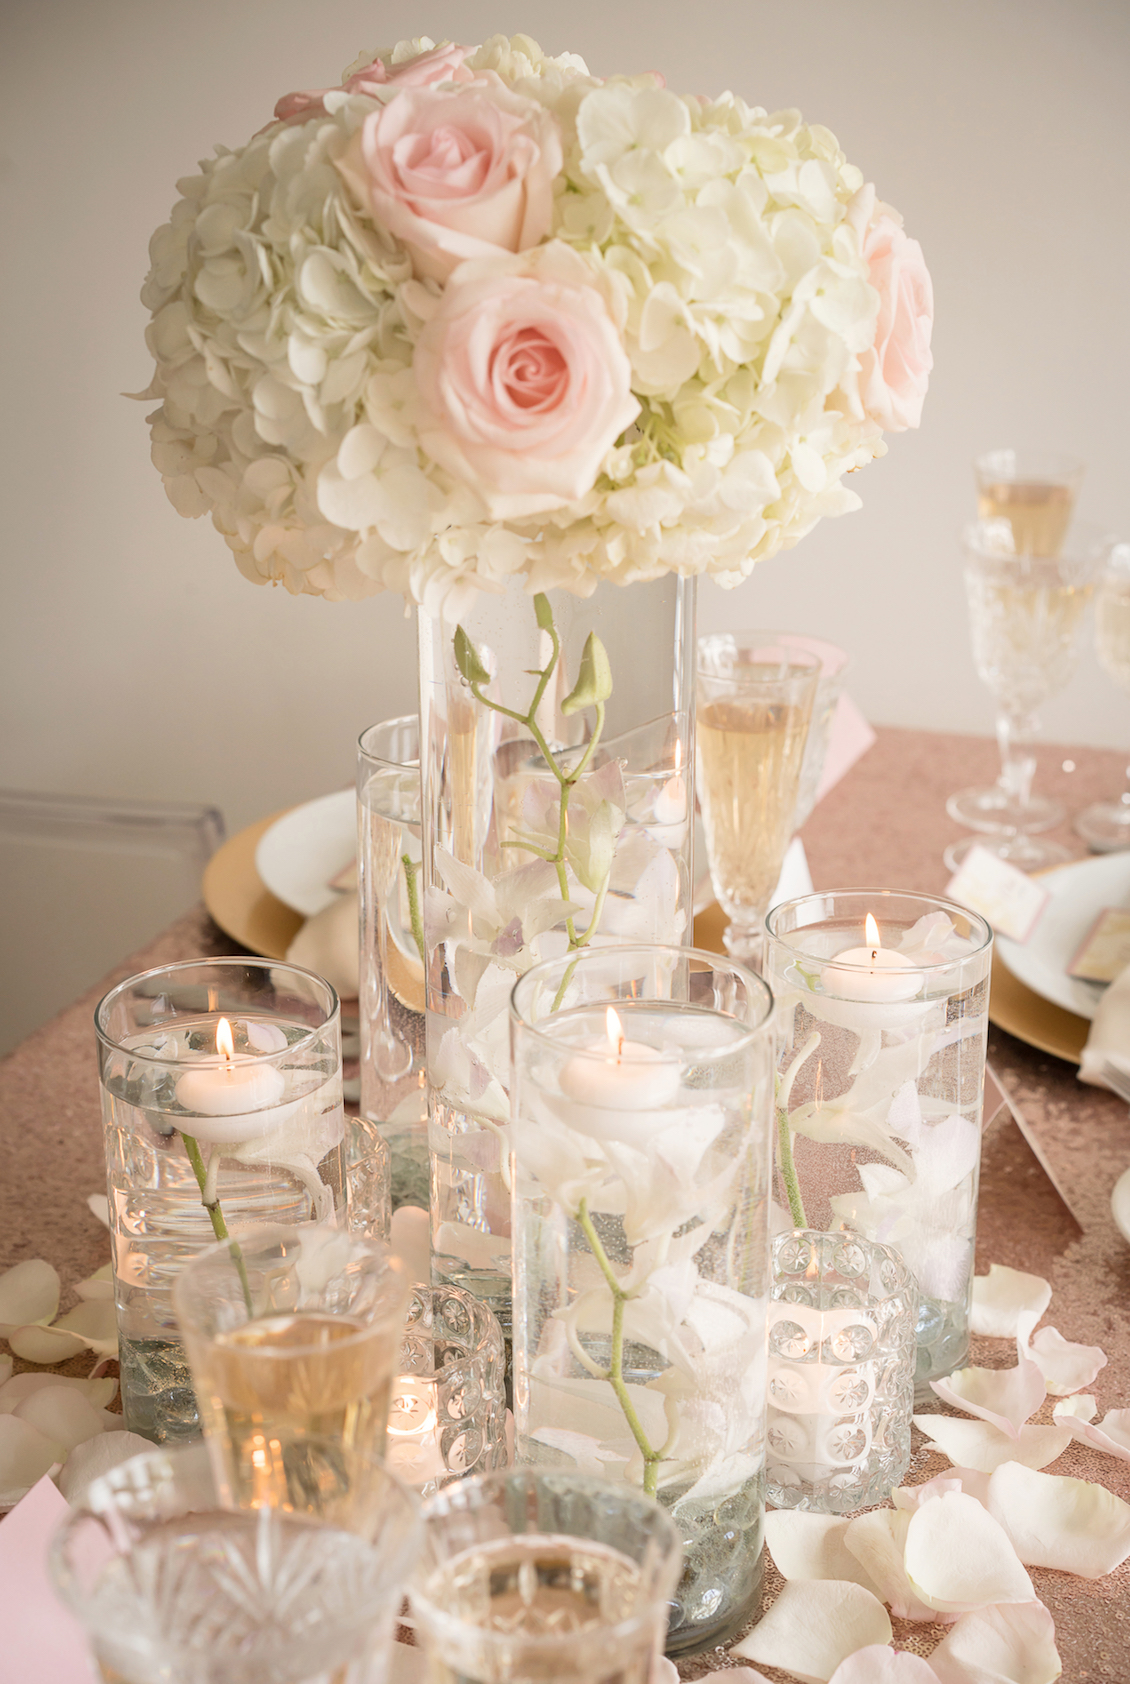 Romantic Wedding Inspiration with flowers floating in Pretty Glass Vases for the Centerpiece / by Madeline Weddings and Events / photo by AMC Studio